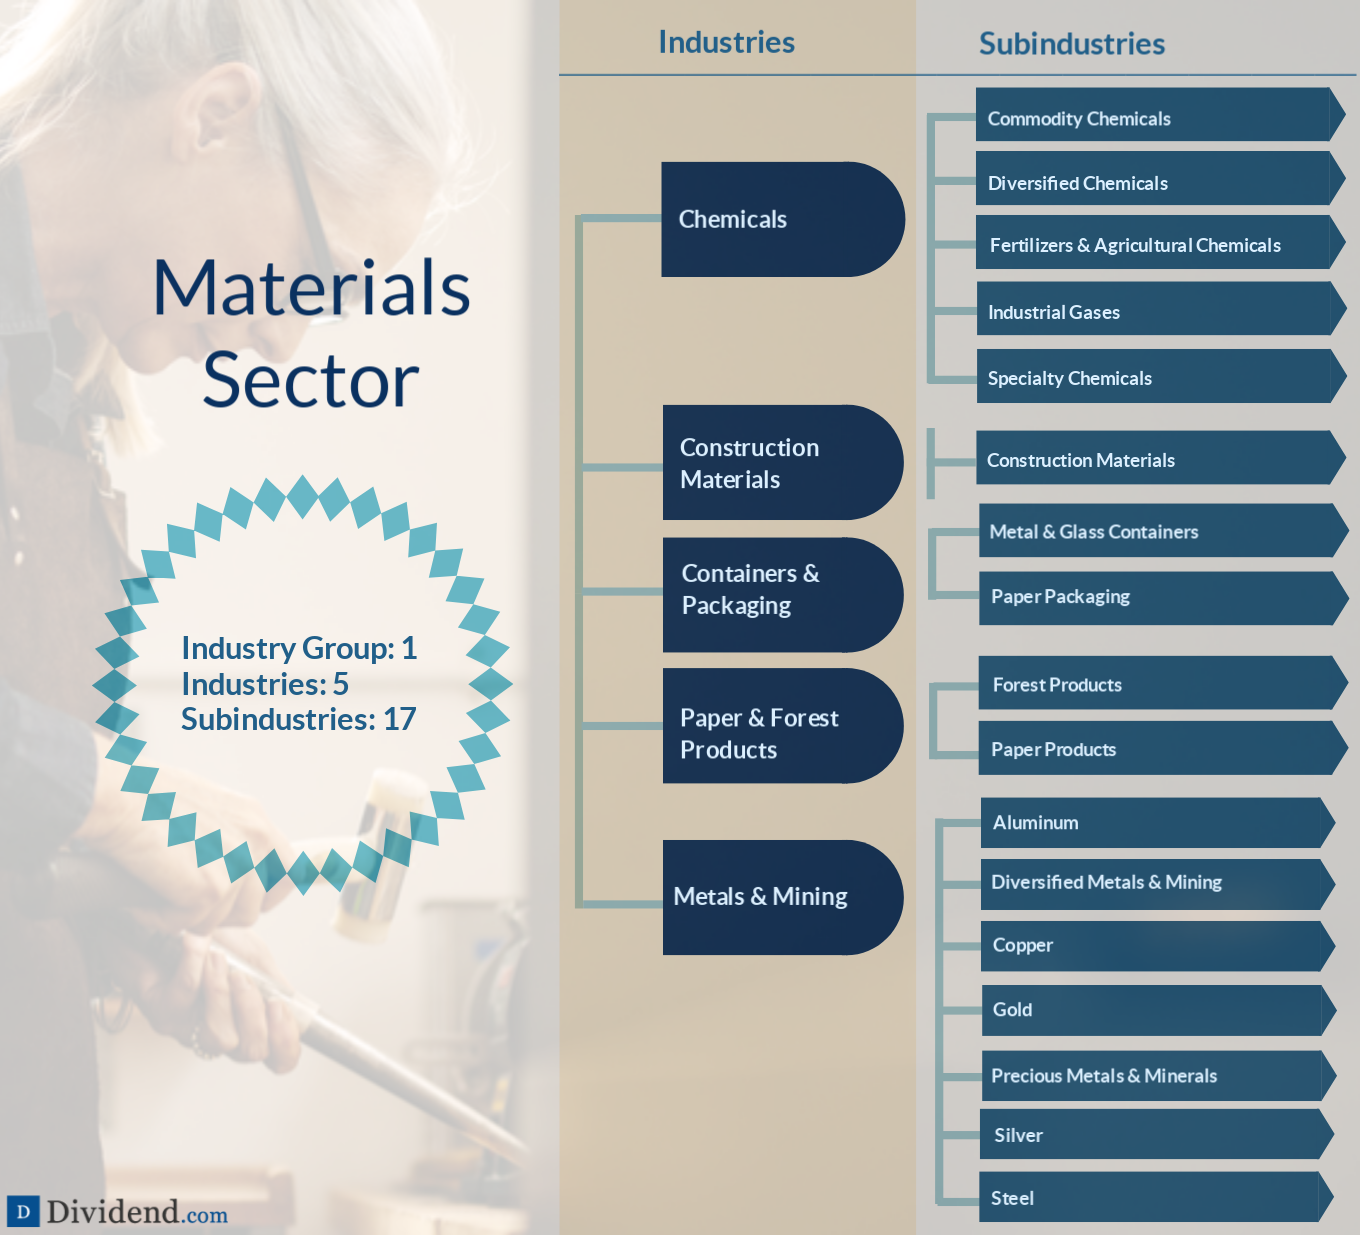 Materials Sector Image